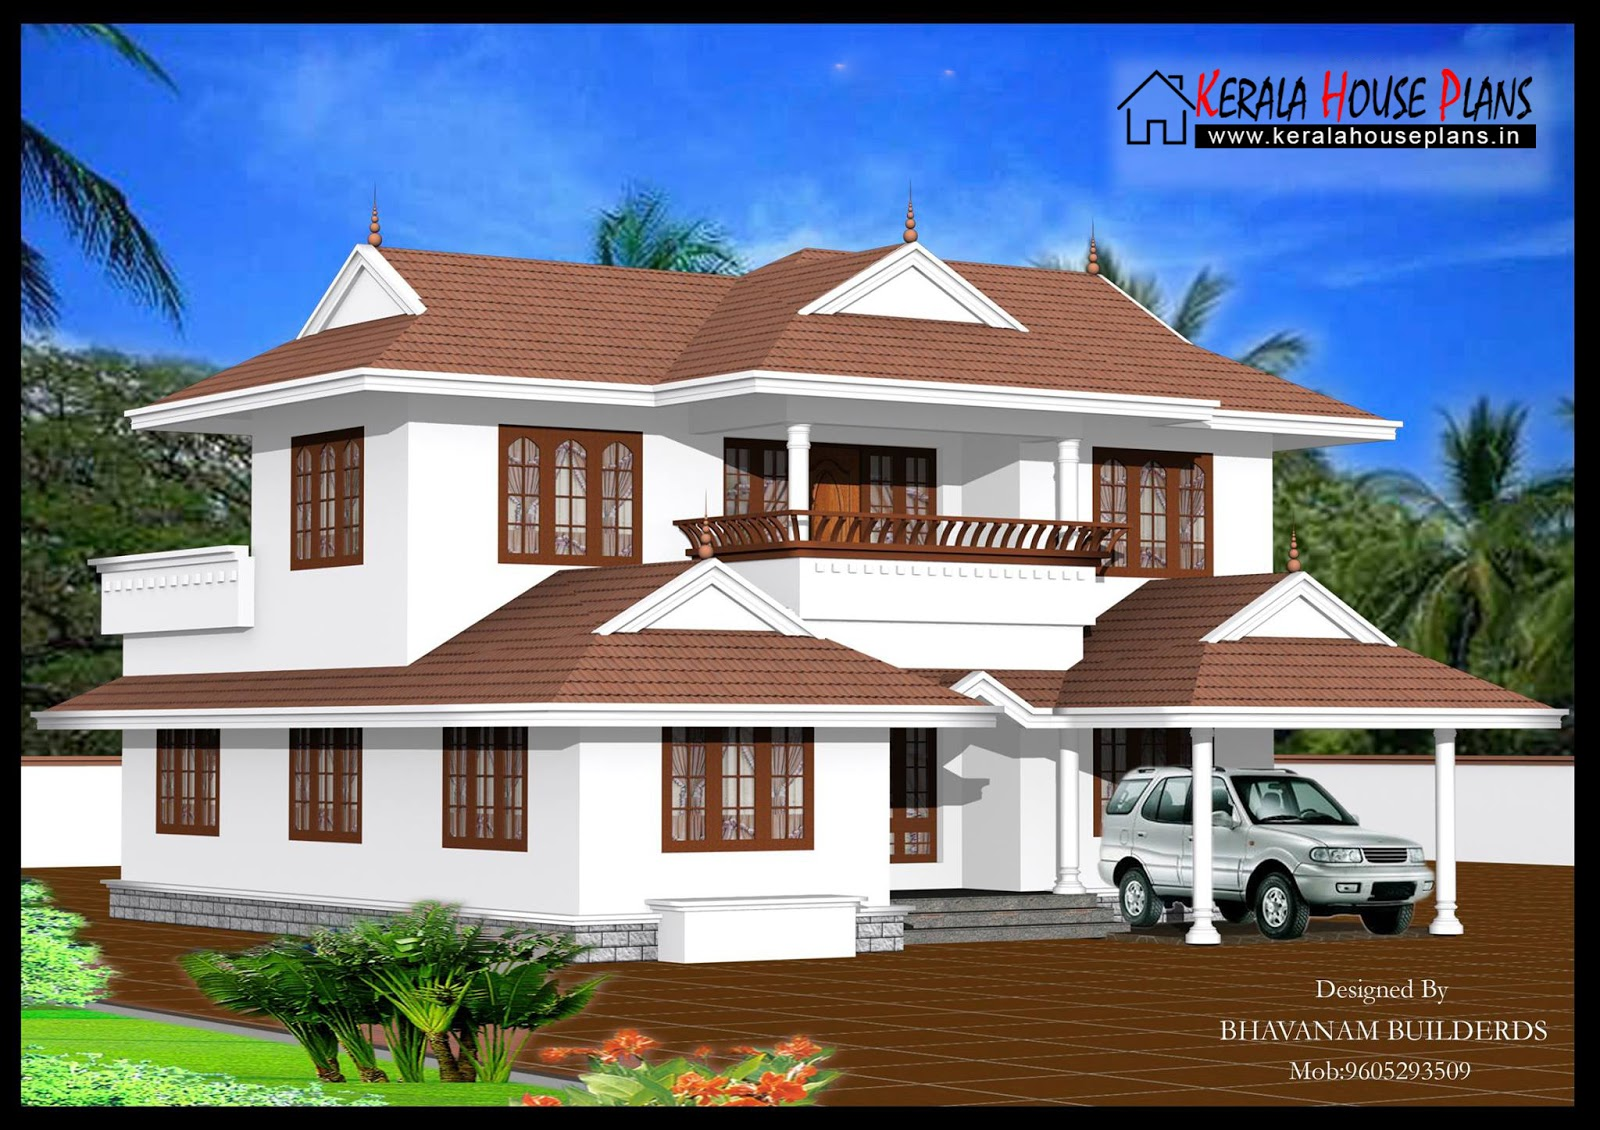 2000 sqft traditional kerala house design kerala house for Traditional house plans in kerala